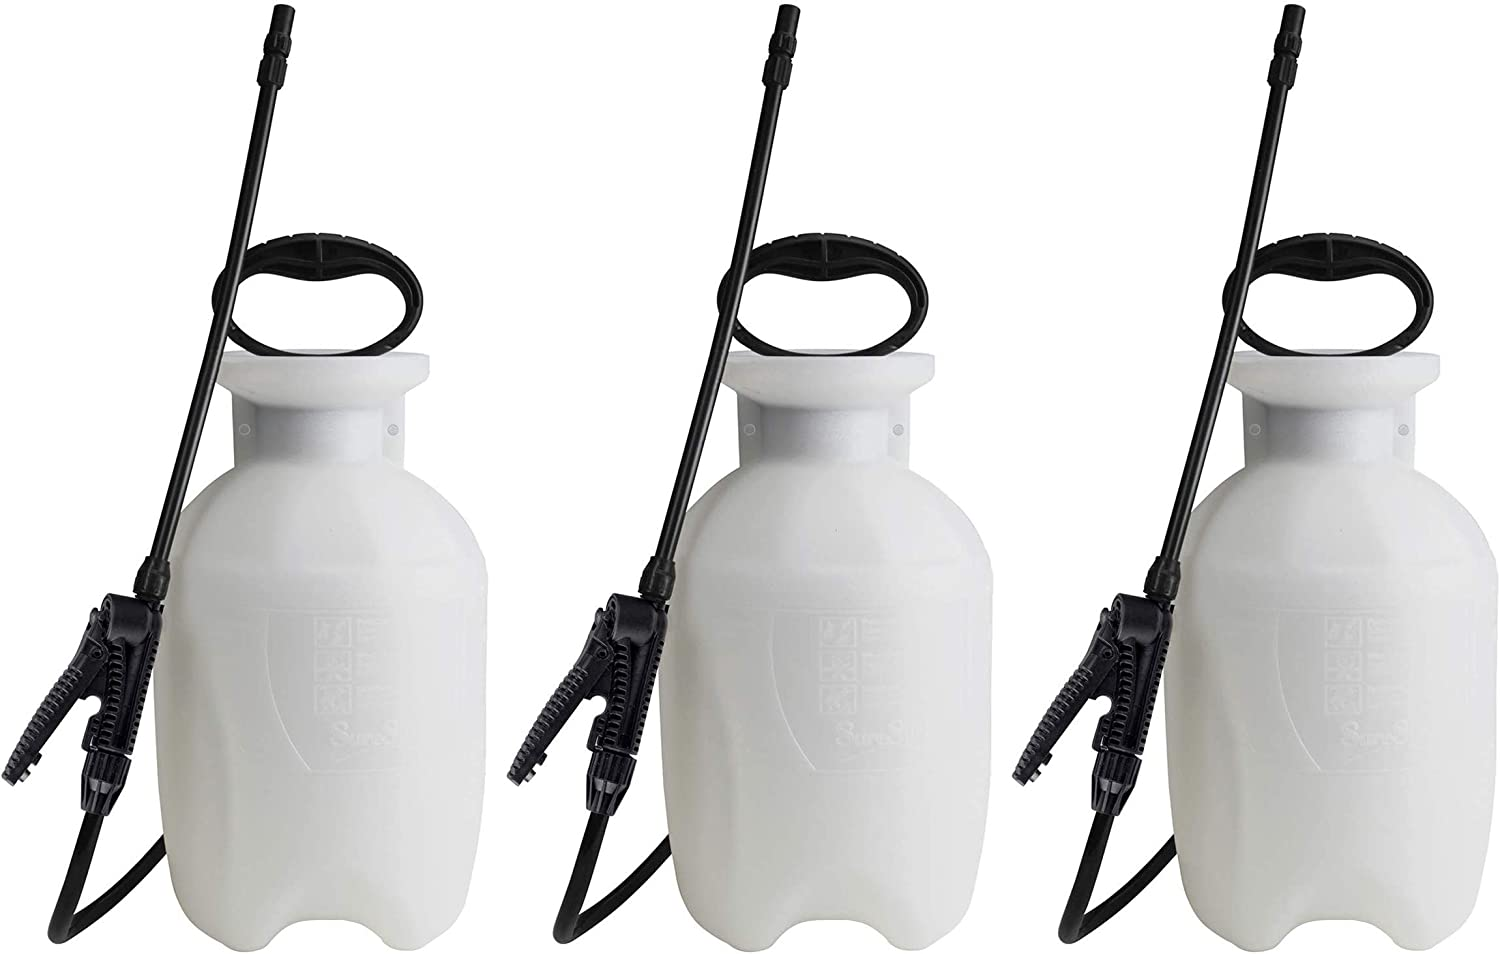 Chapin 20000, 1 Gallon Lawn, Garden and Multi-Purpose Sprayer with Adjustable Nozzle, Translucent White, 3 Pack